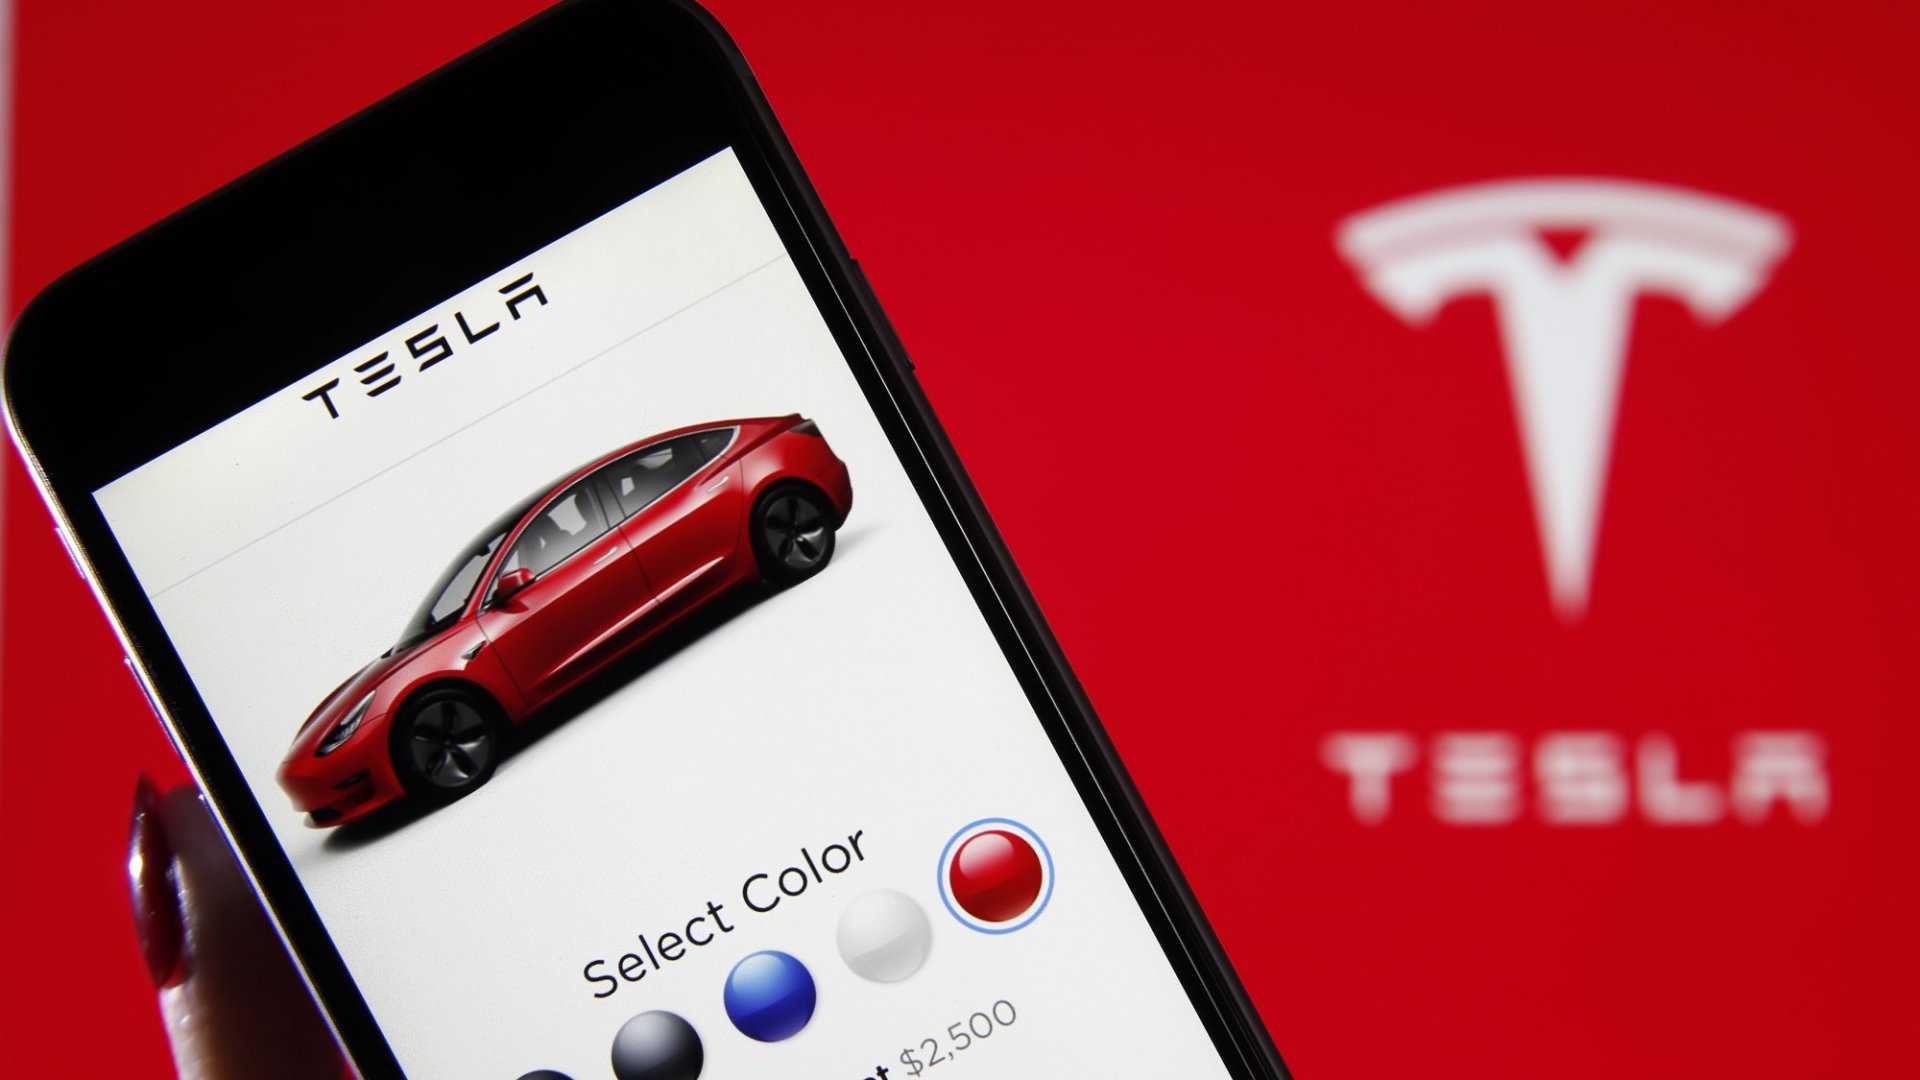 Apple Made a Secret Offer to Buy Tesla, and the Deal Fell Apart for a Truly Stunning Reason, a New Report Says. (How Did Nobody Even Notice This?)